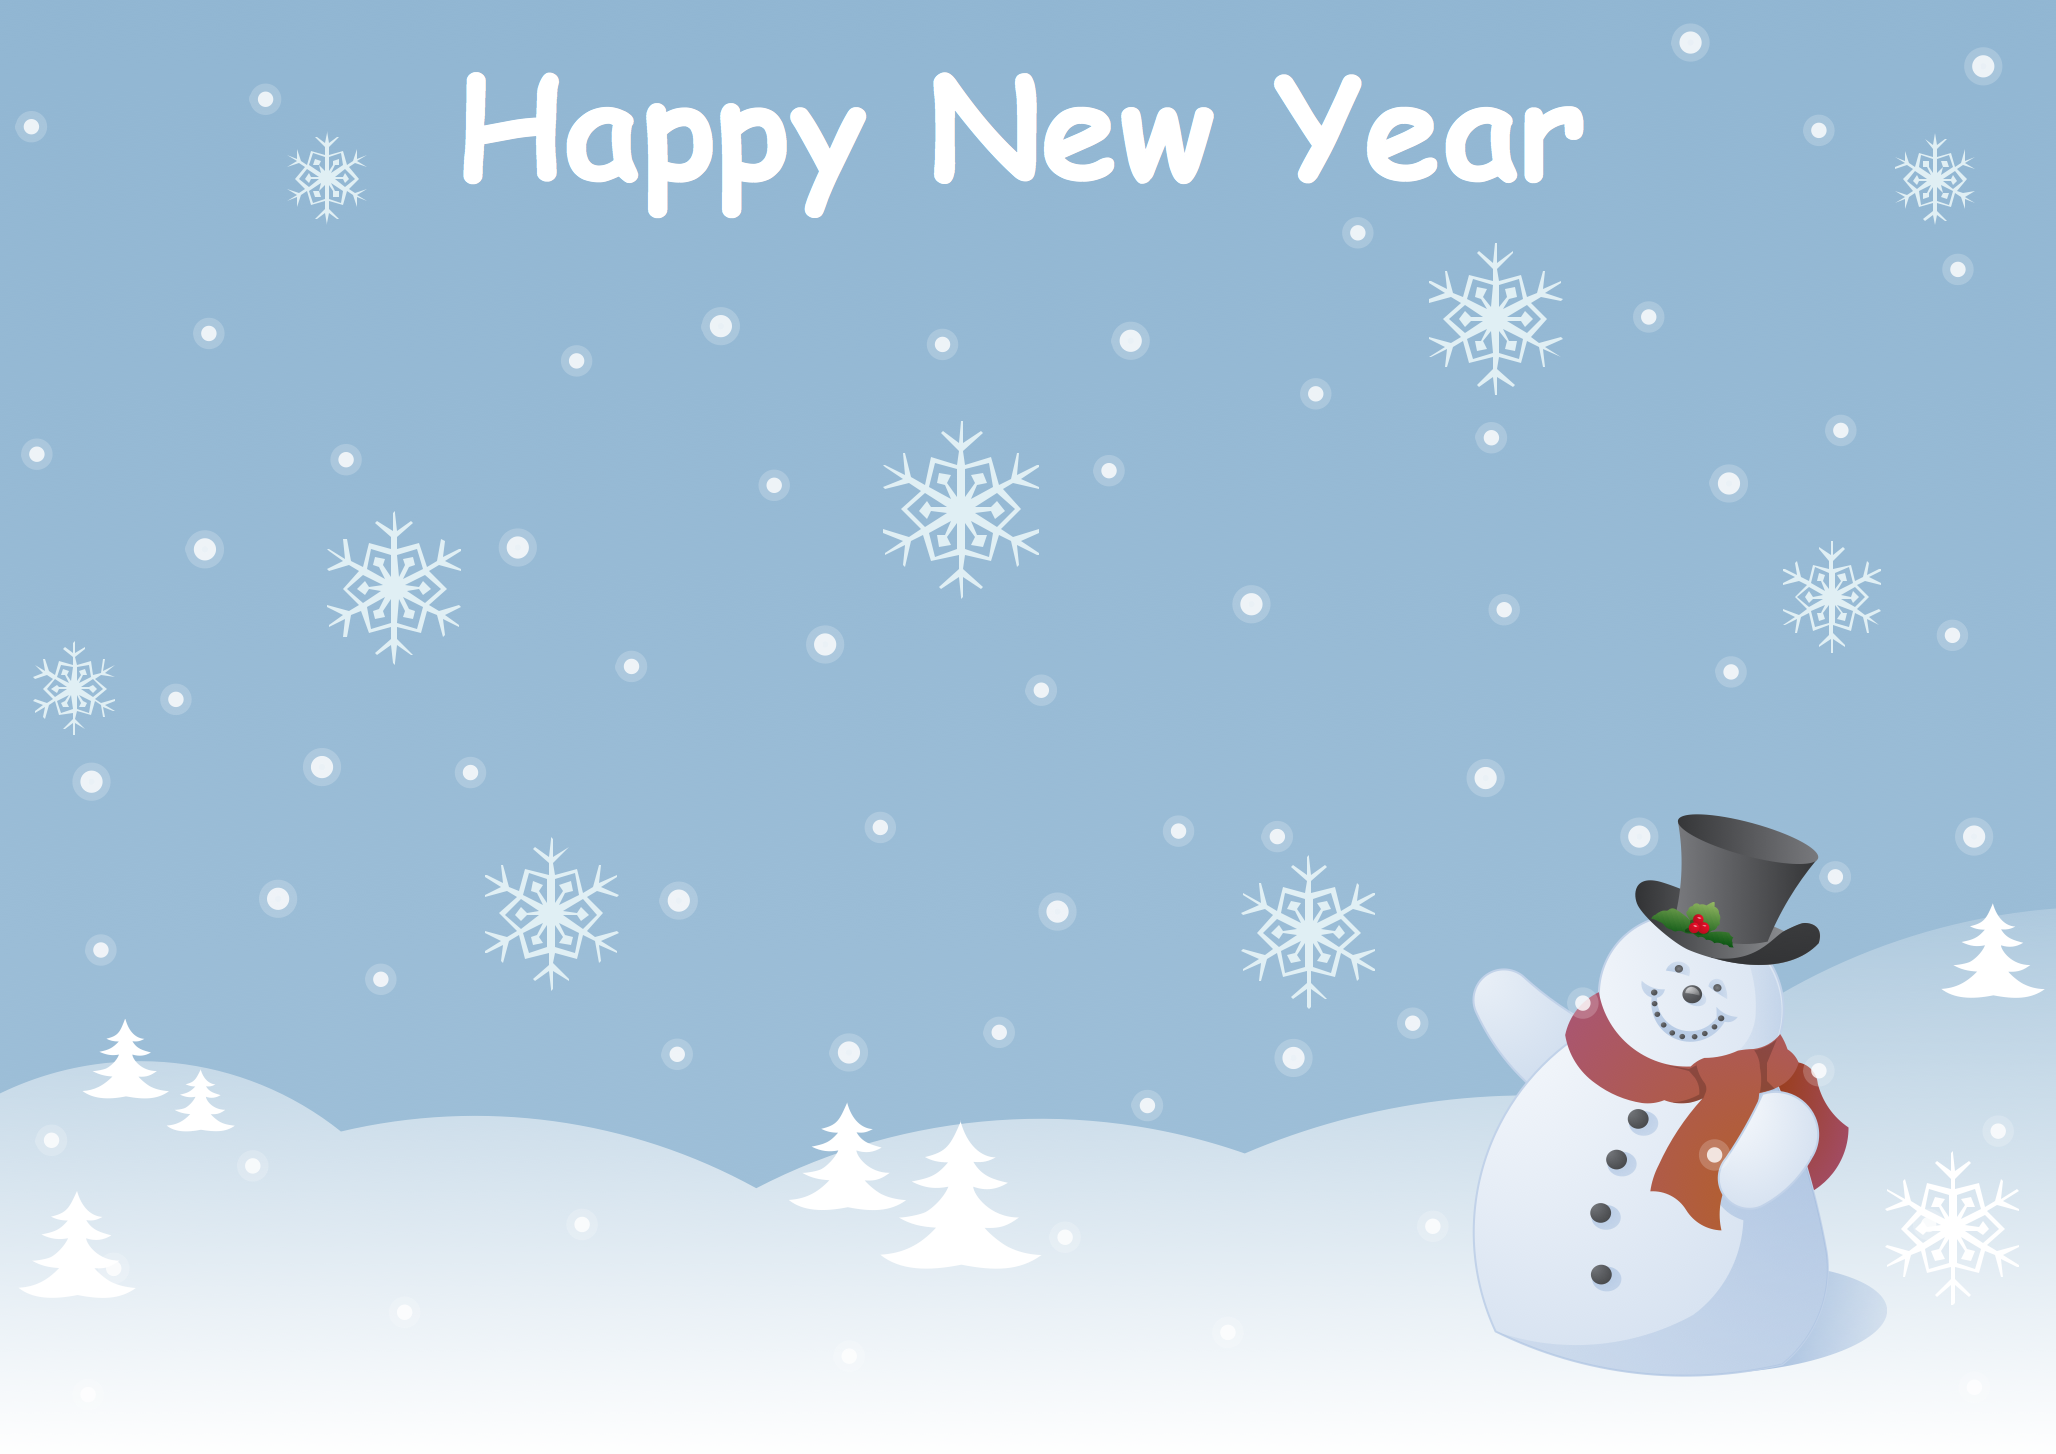 New Year Card - Snowman